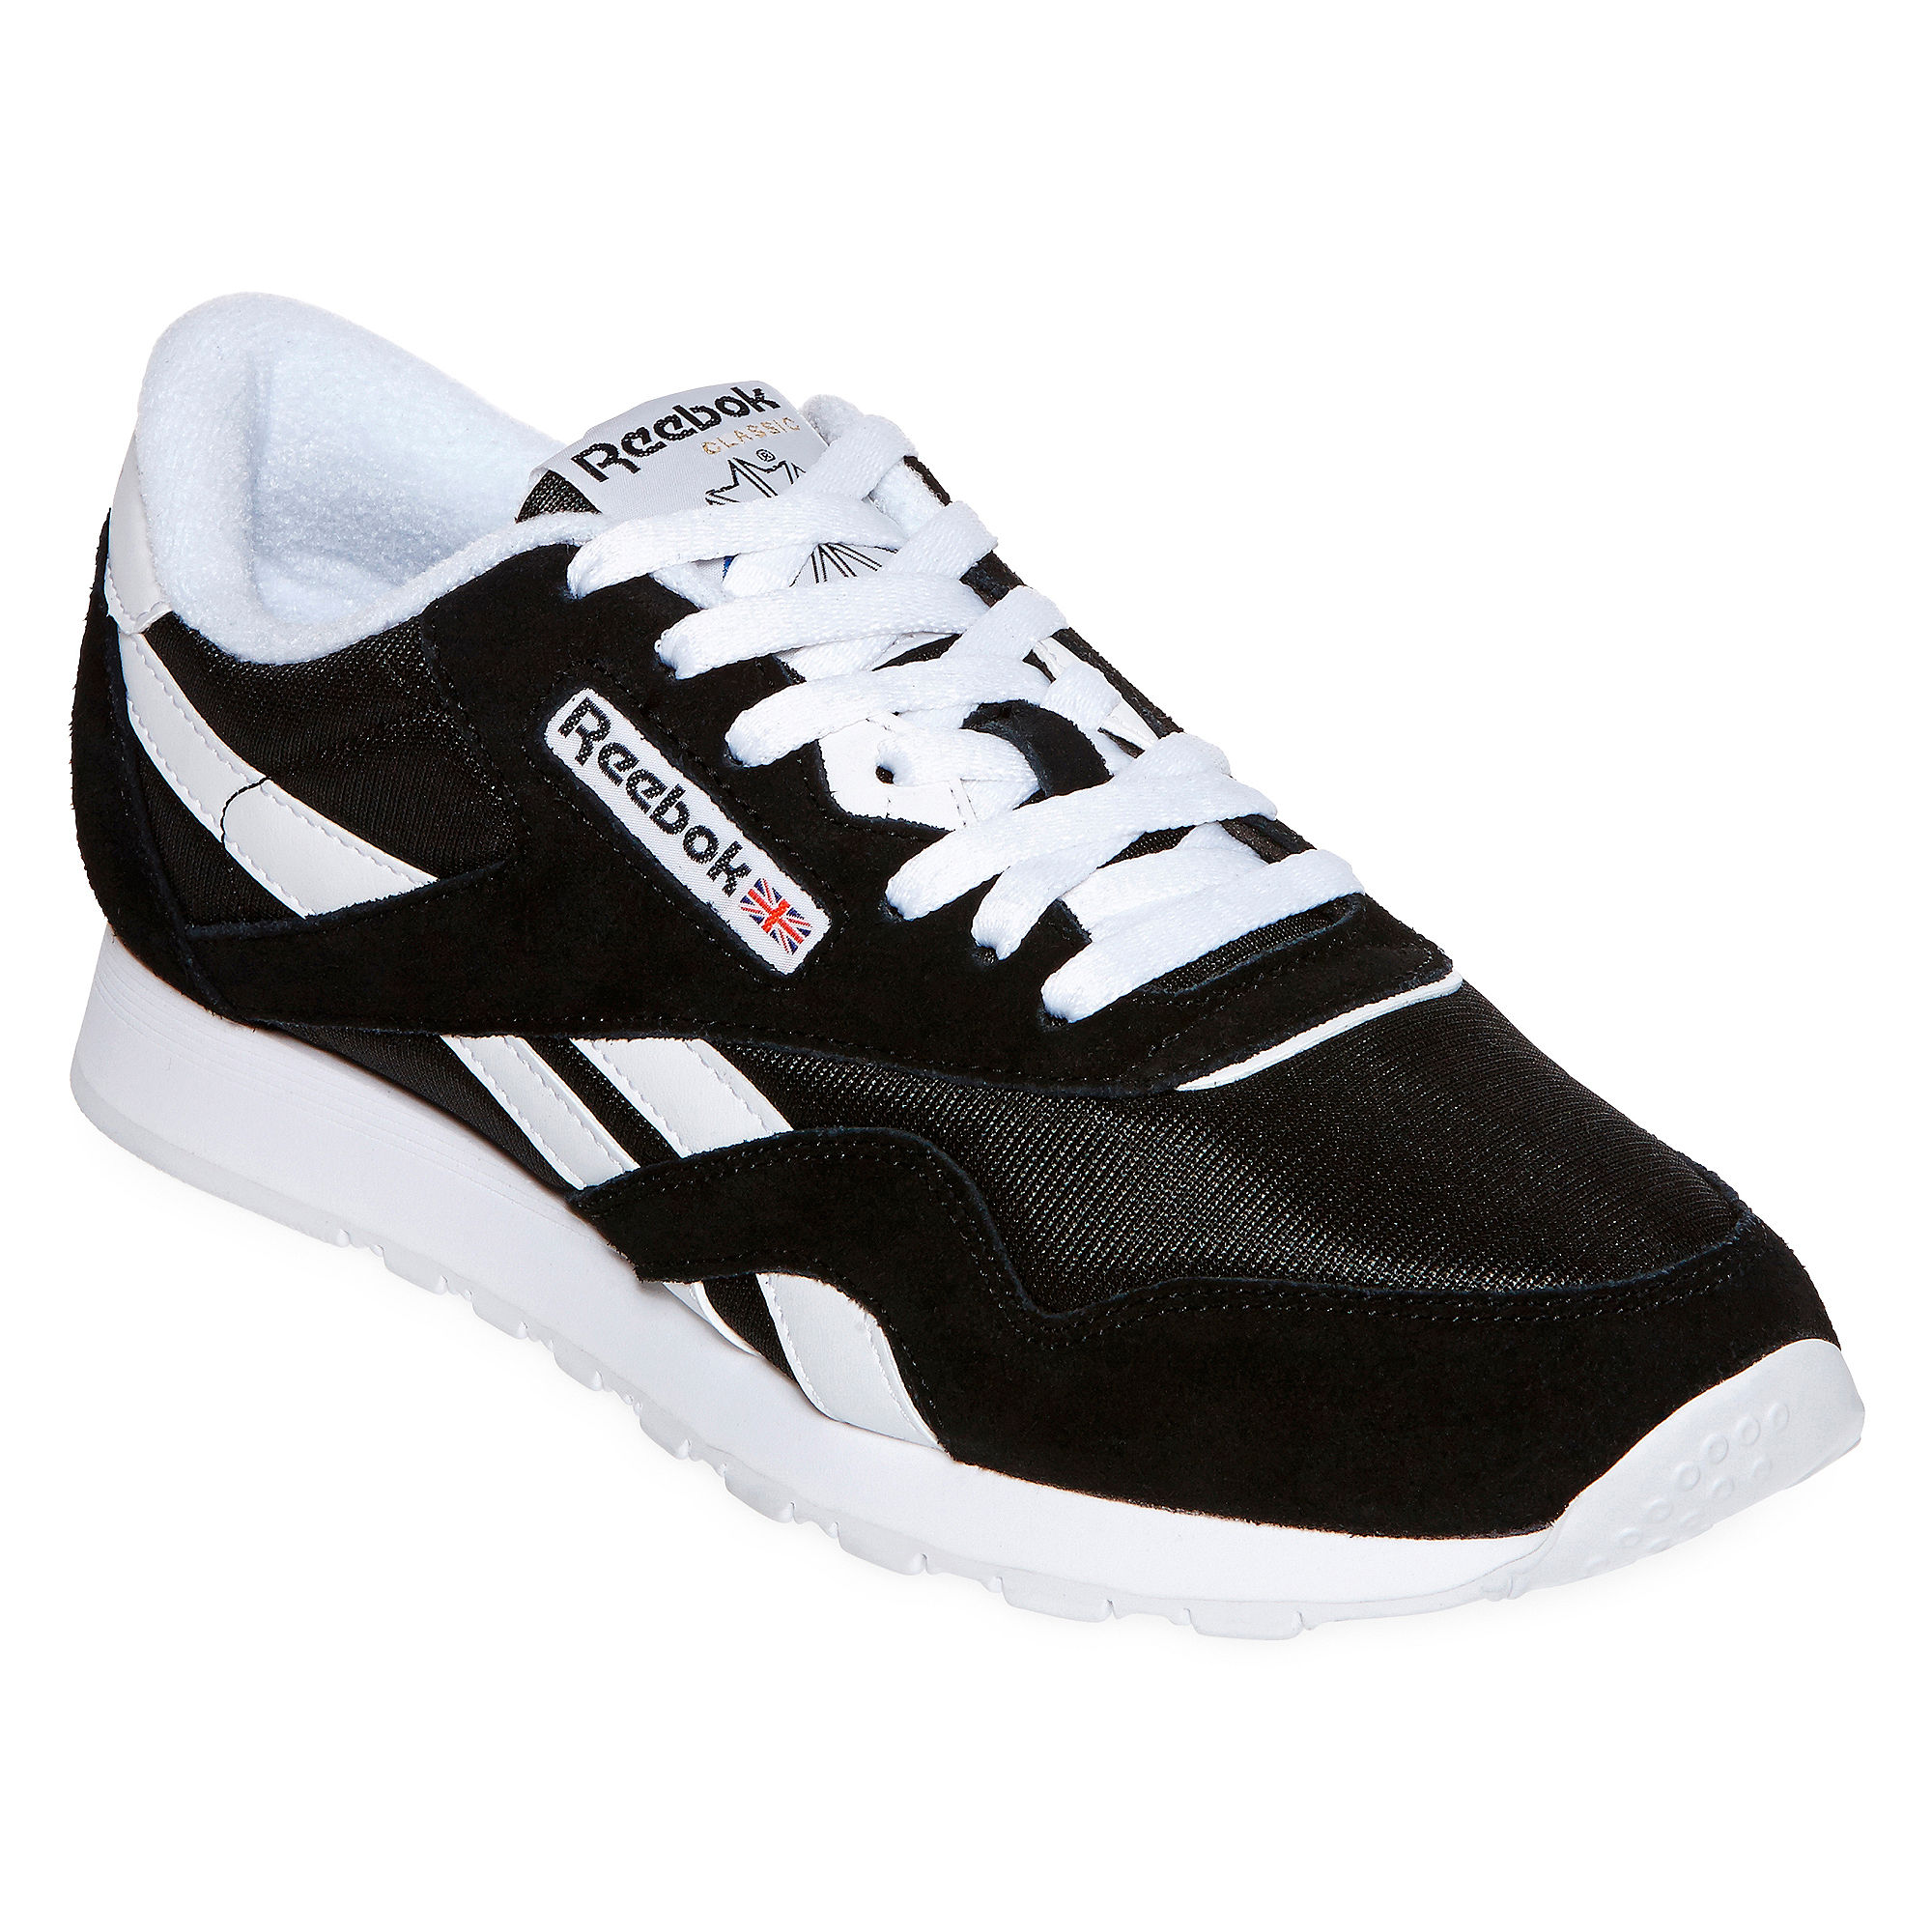 b034d021f6c7 UPC 054871629914 product image for Reebok Classic Nylon Mens Athletic Shoes